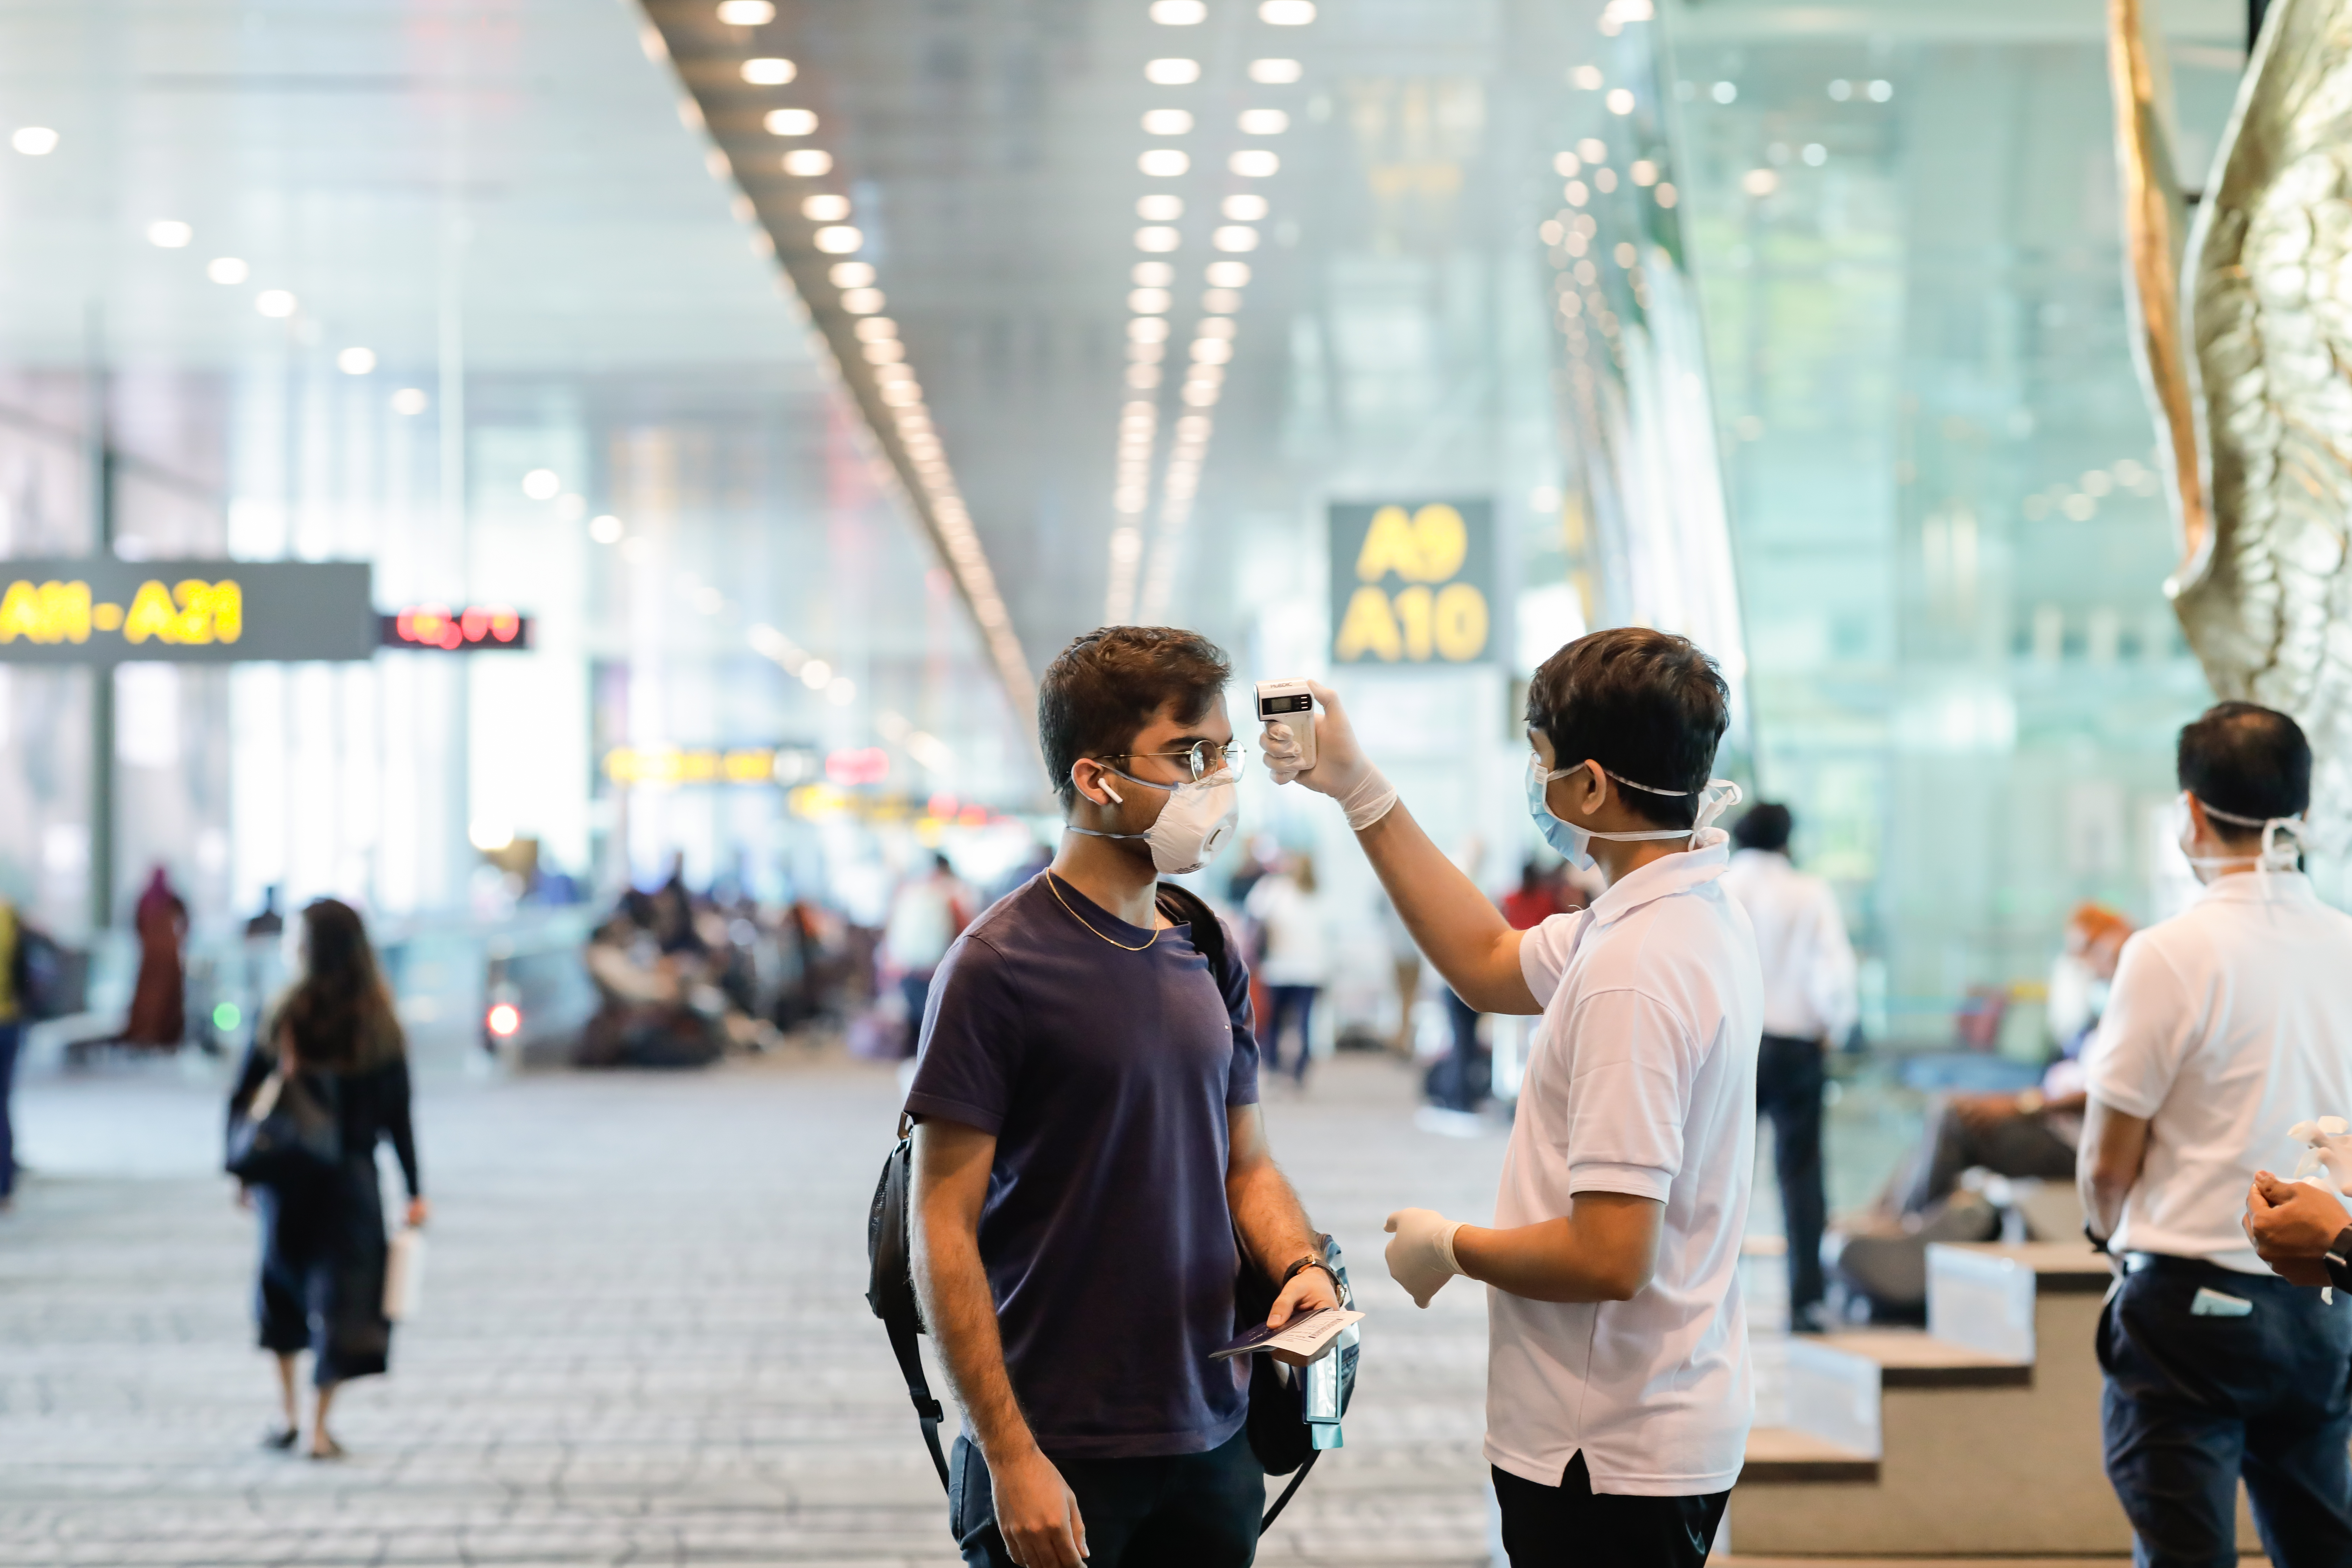 The latest figure also marks a 3.6 per cent dip from the 24,010 arrivals clocked in December 2020.